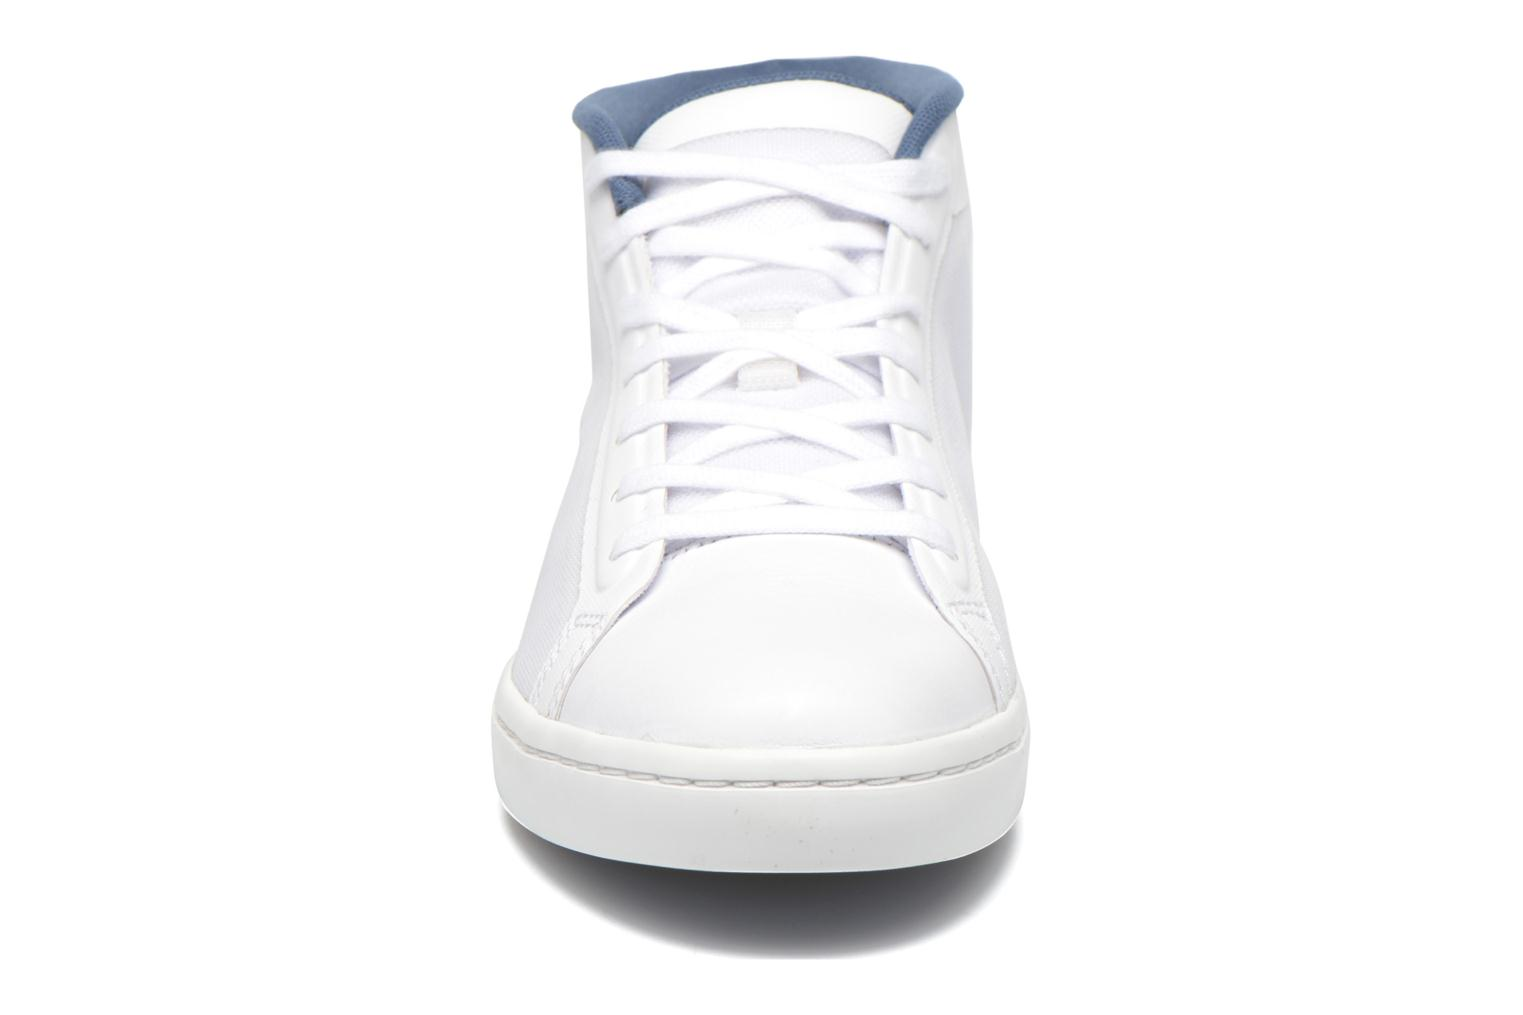 Baskets Lacoste Straightset Chukka 316 2 Blanc vue portées chaussures